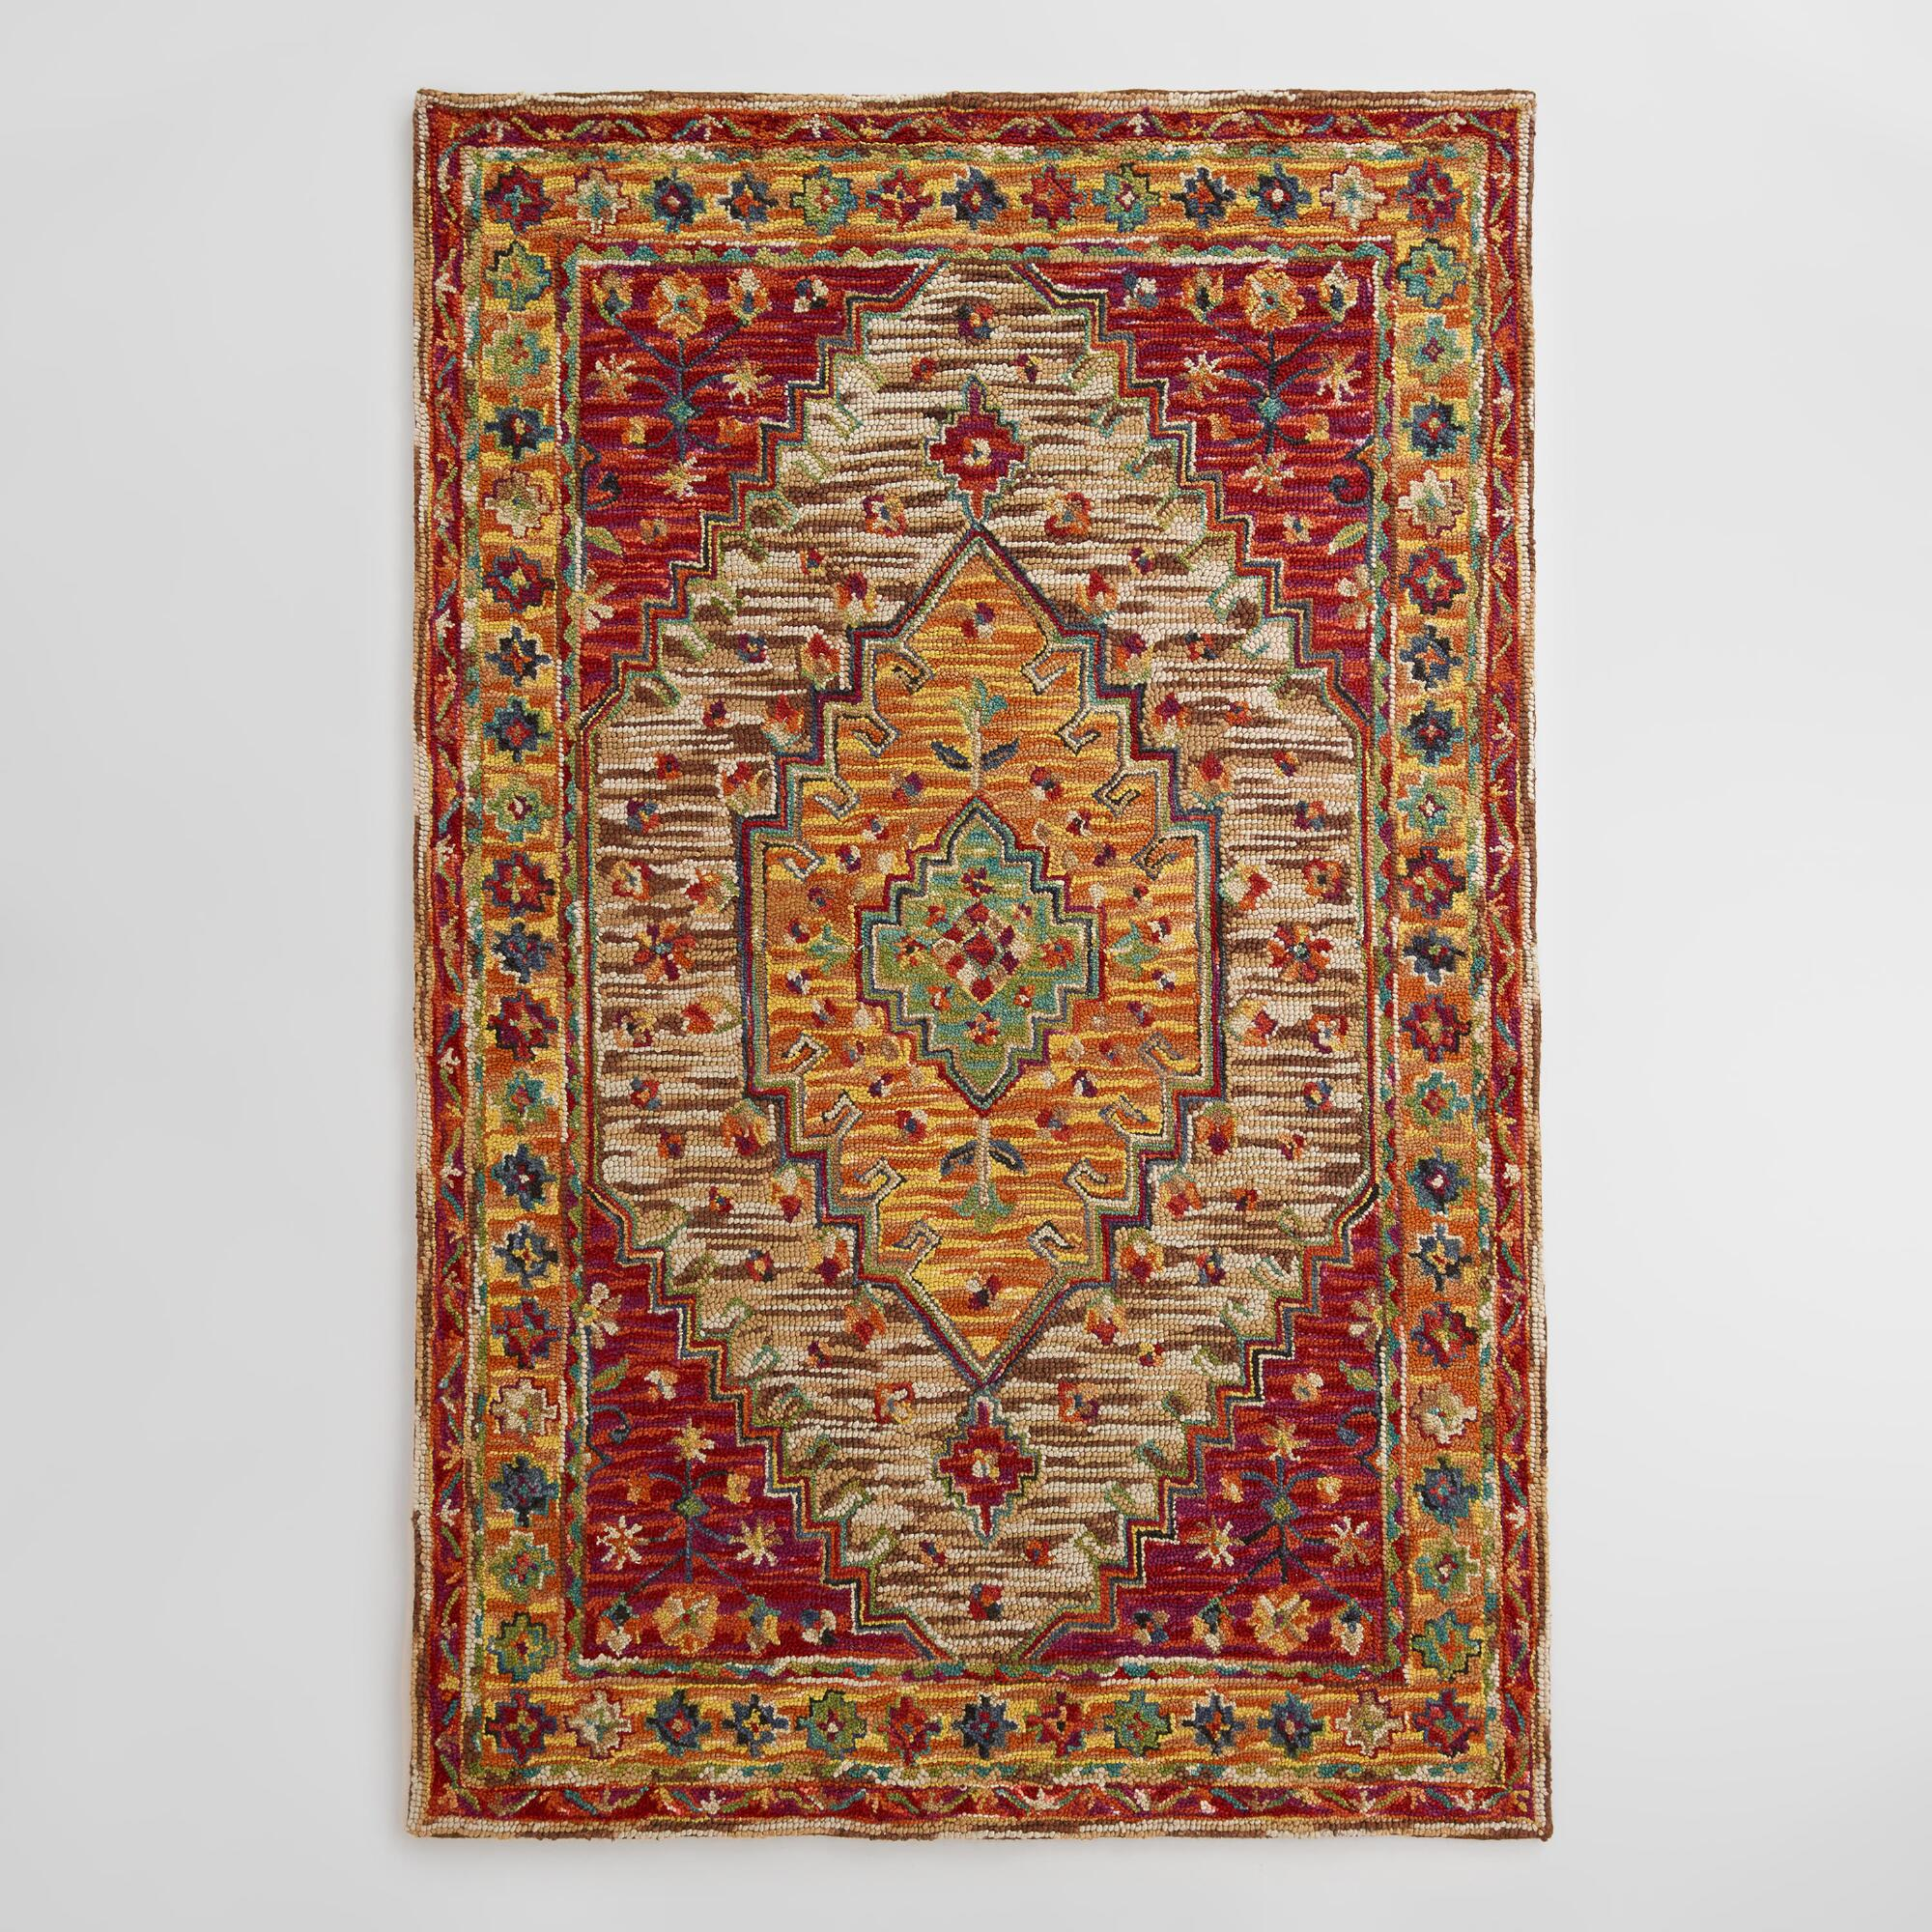 free fiber traditional today shipping garden white product clay inch area overstock elephant planter home rug